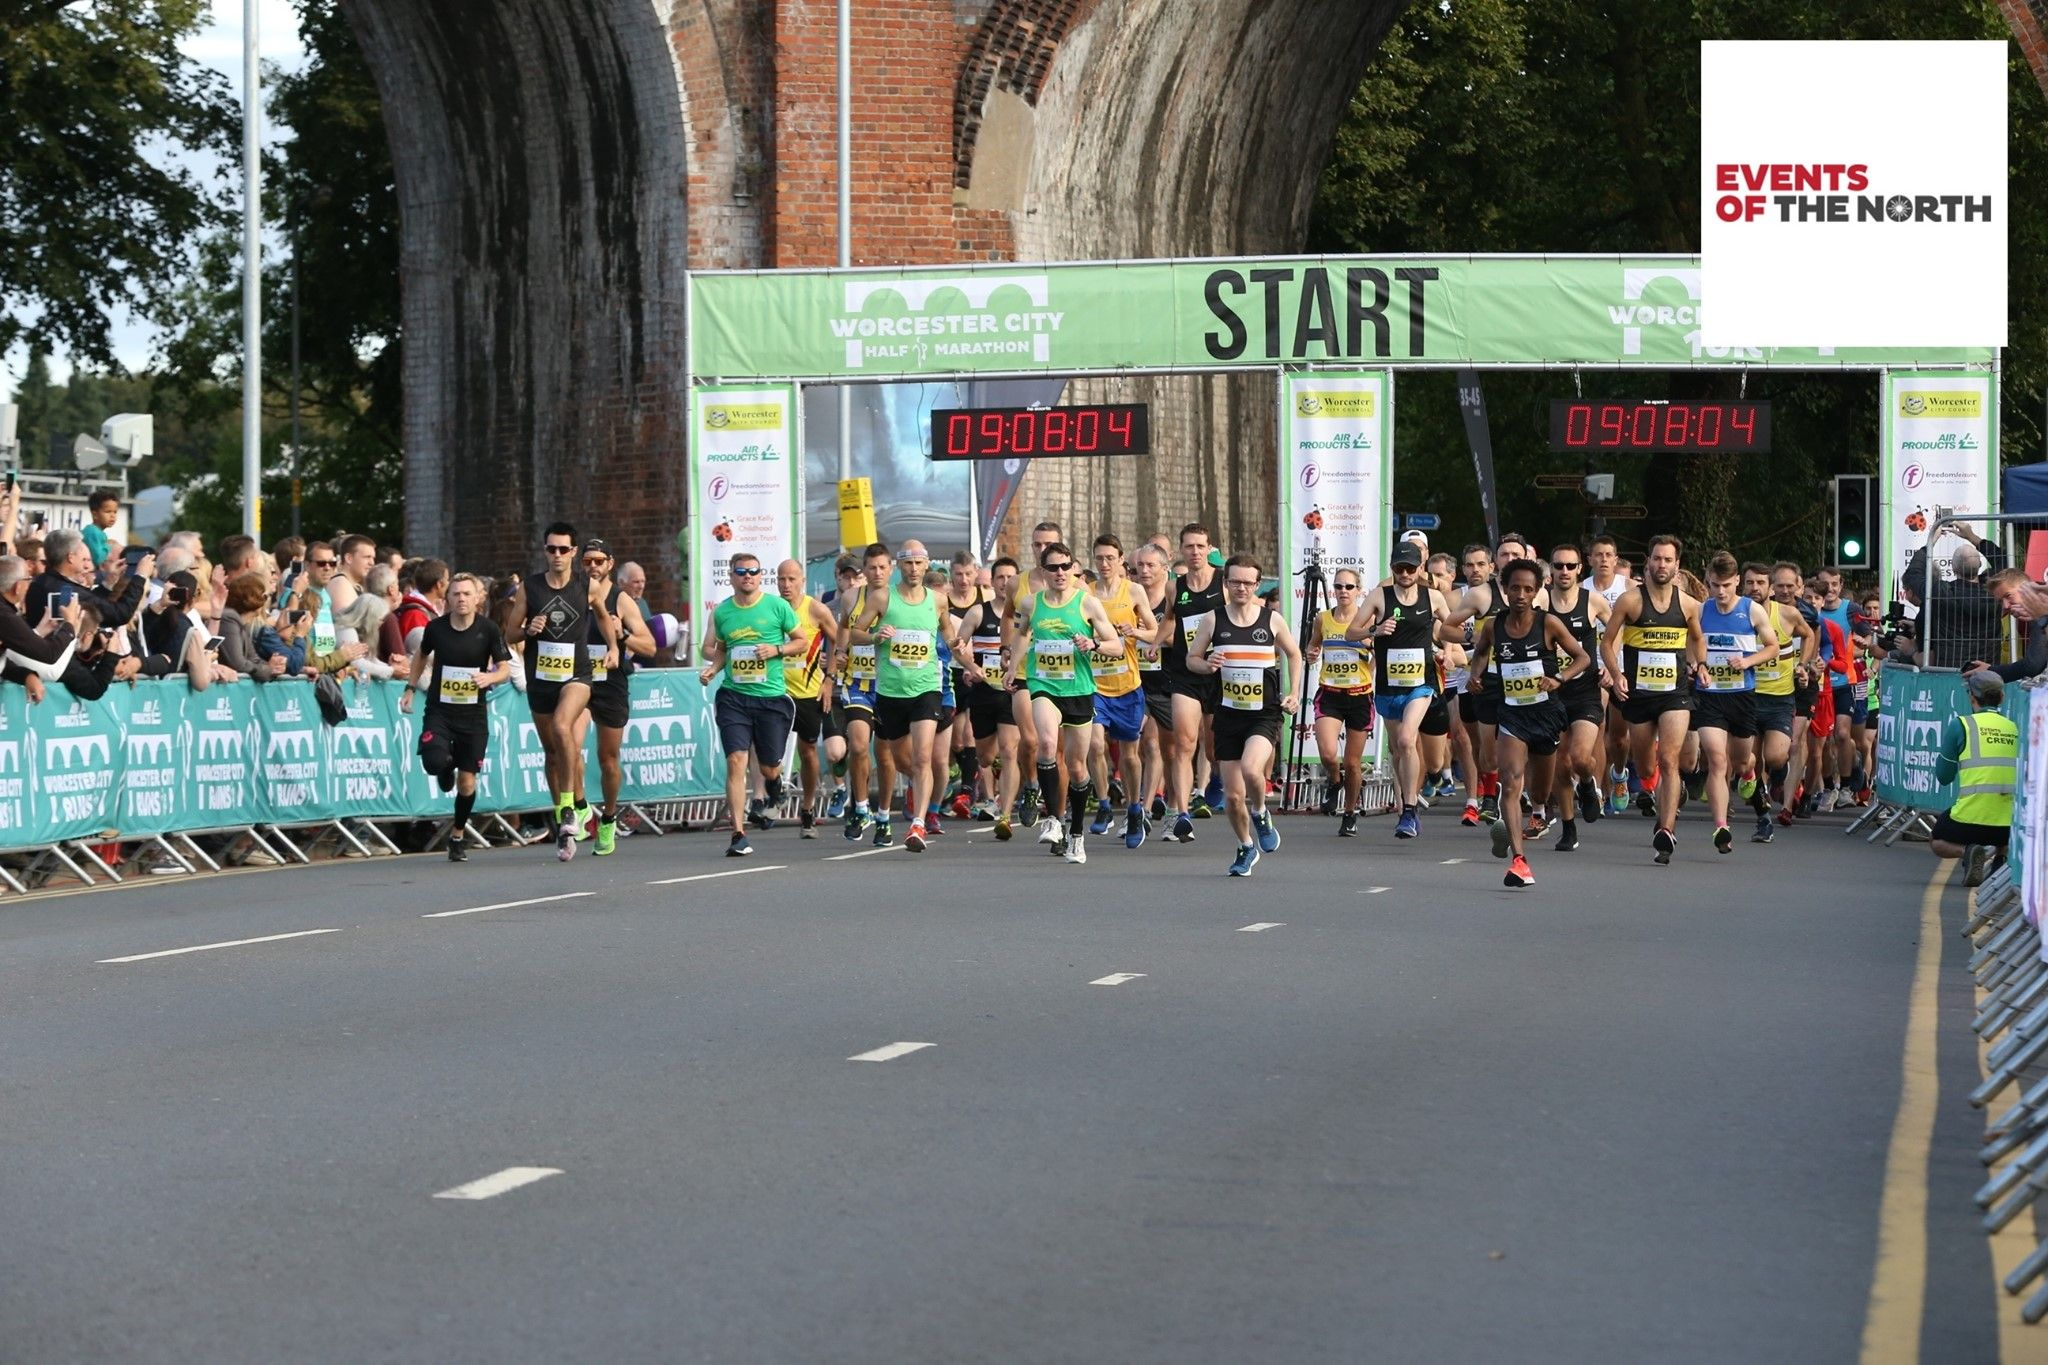 Runner signs up to Worcester half marathon, not realising it was over 3000 miles away